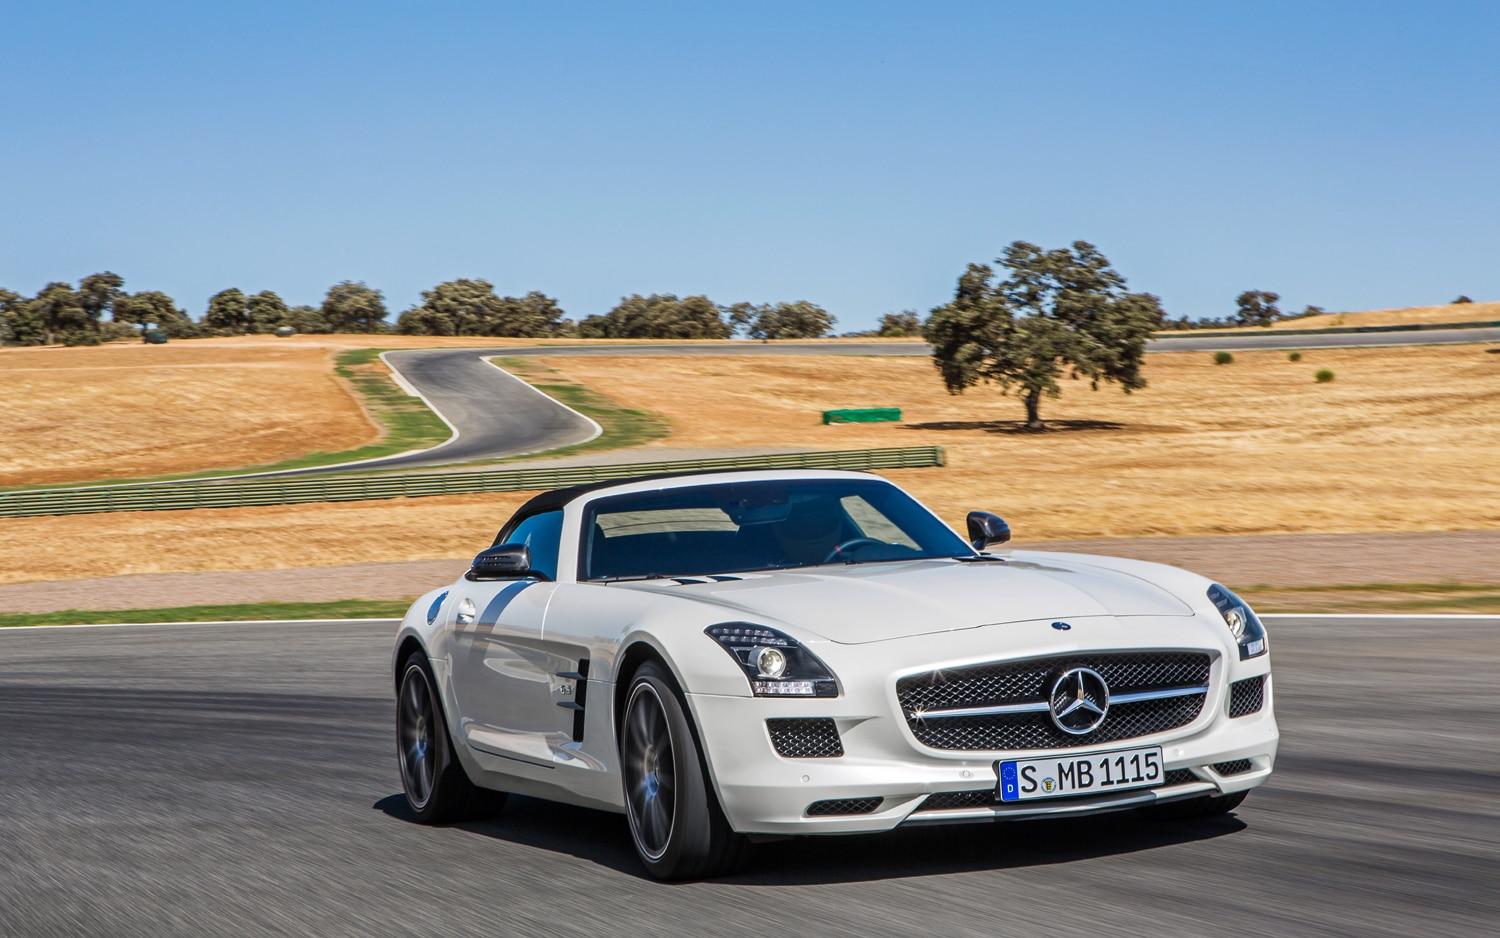 los angeles 2012 2013 mercedes benz sls amg gt gl63 amg pricing revealed. Black Bedroom Furniture Sets. Home Design Ideas